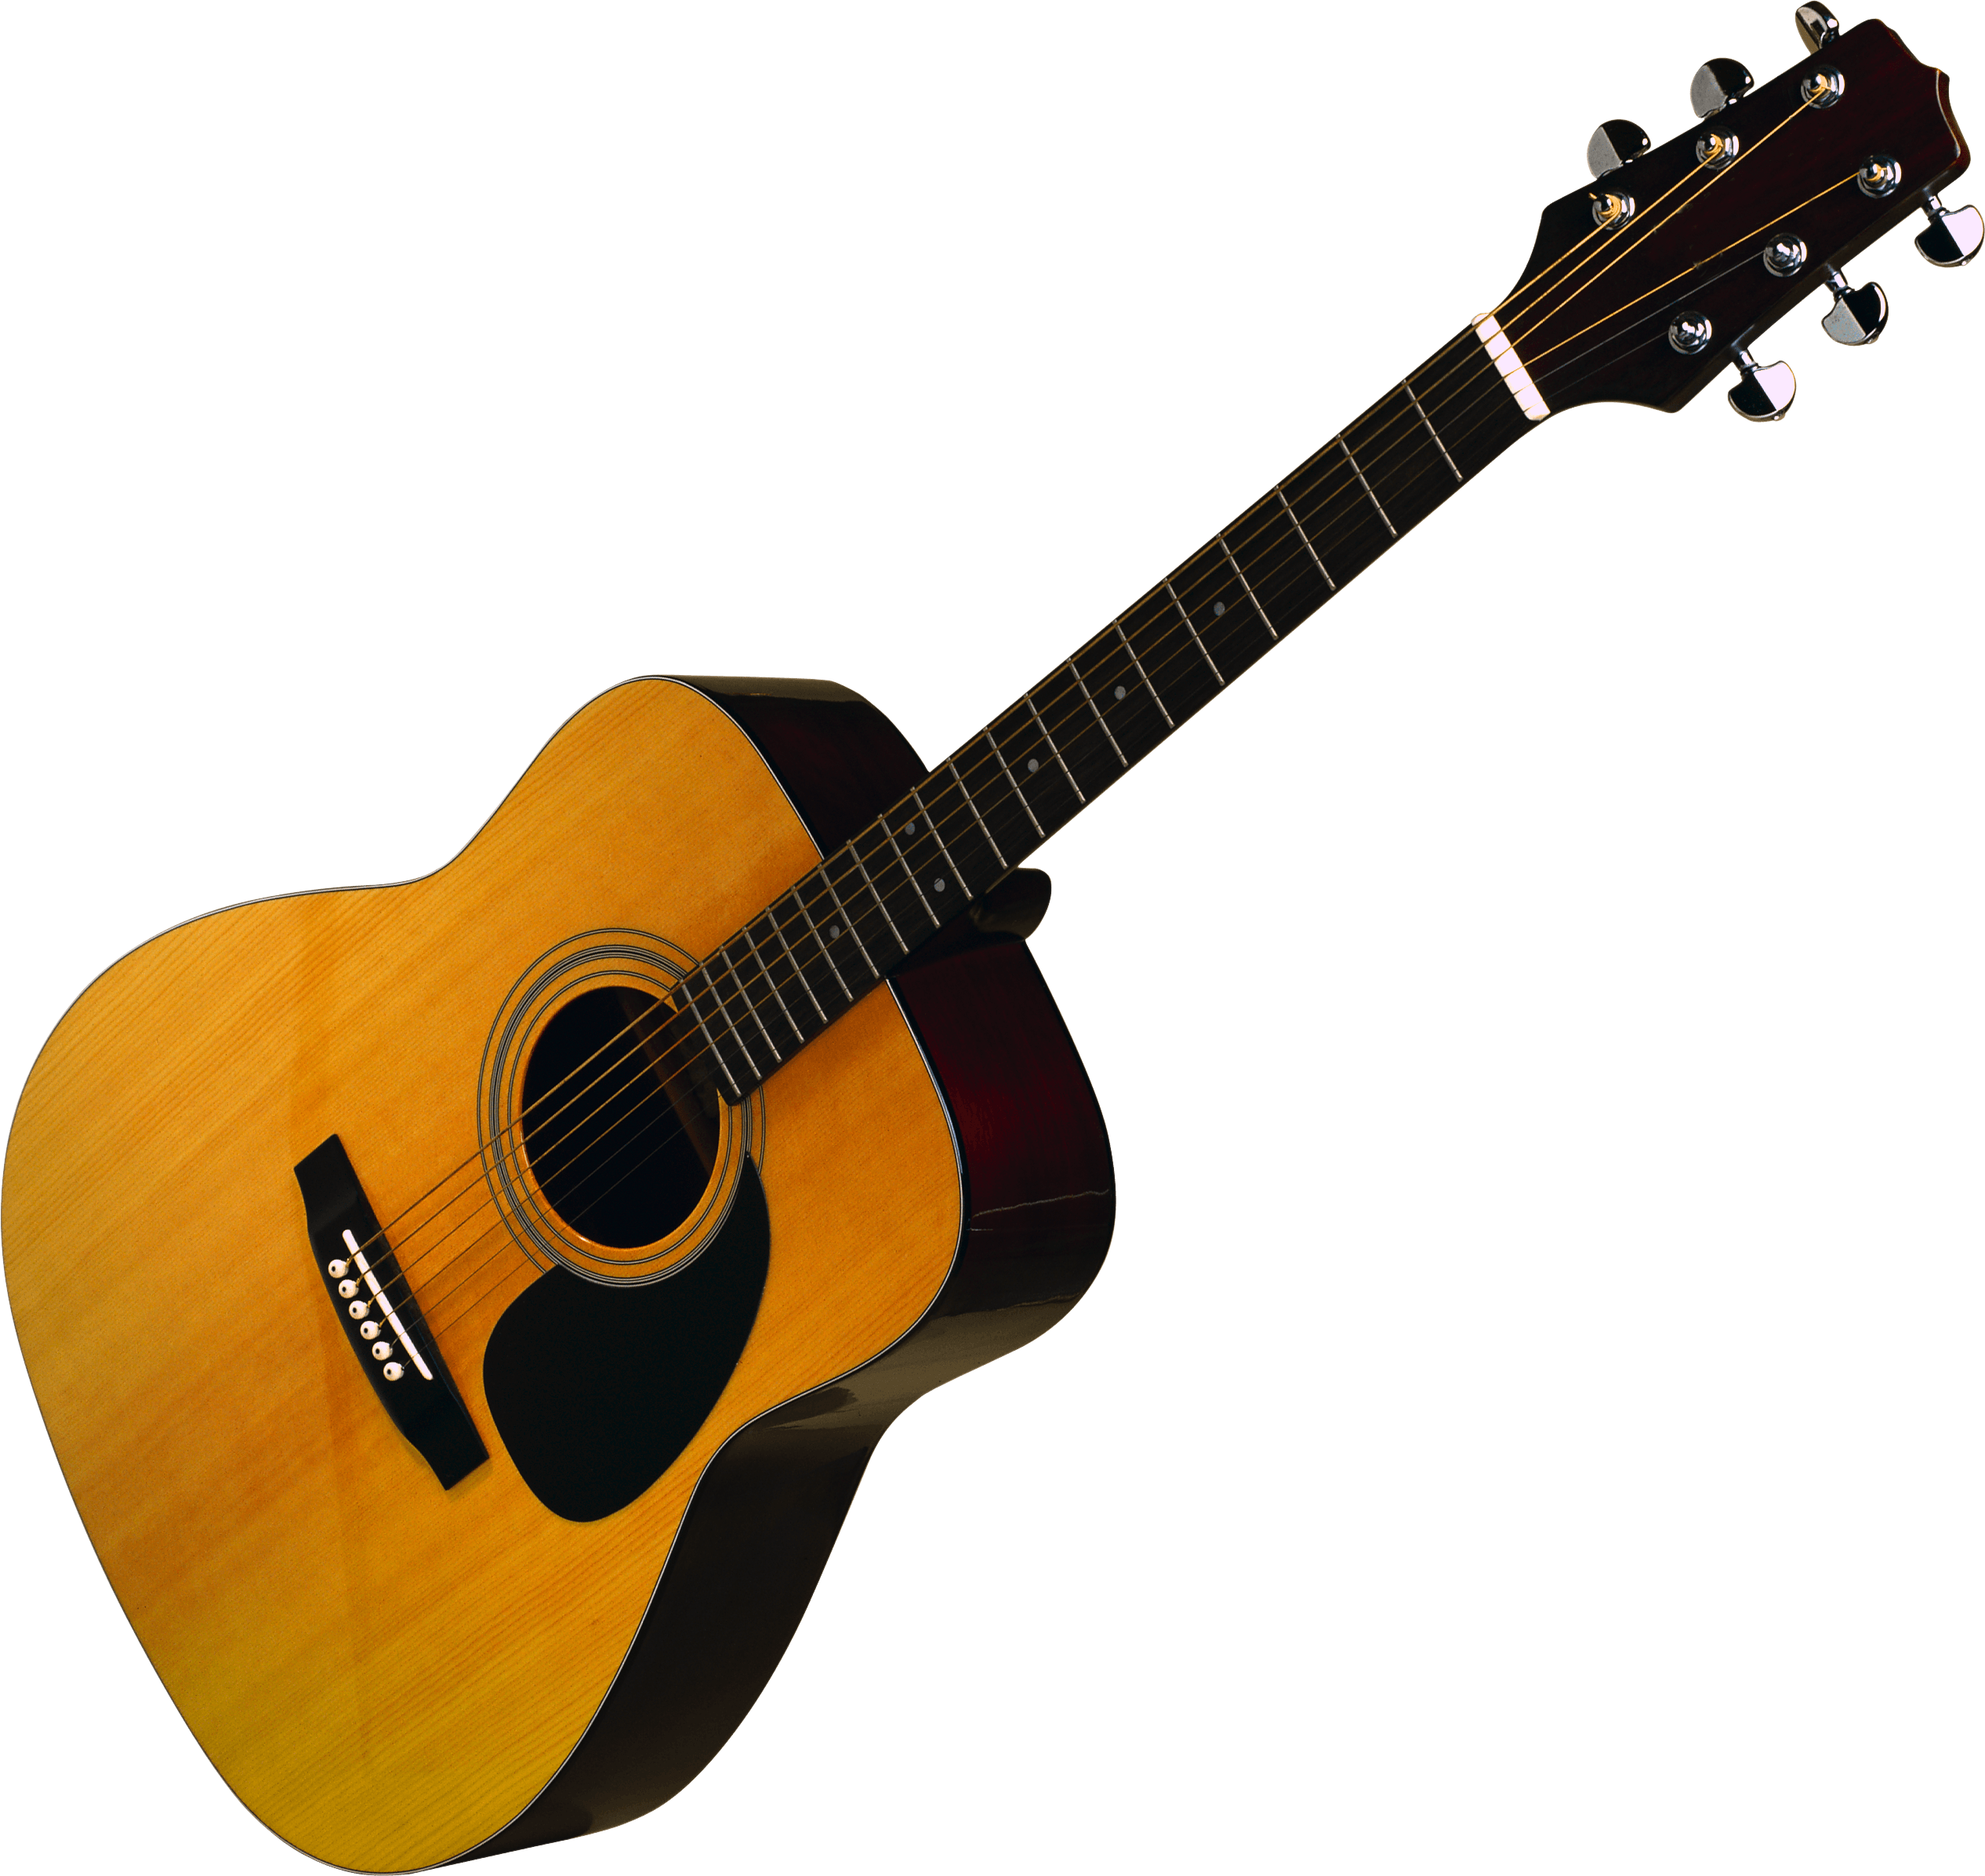 guitar free png photo images and clipart freepngimg